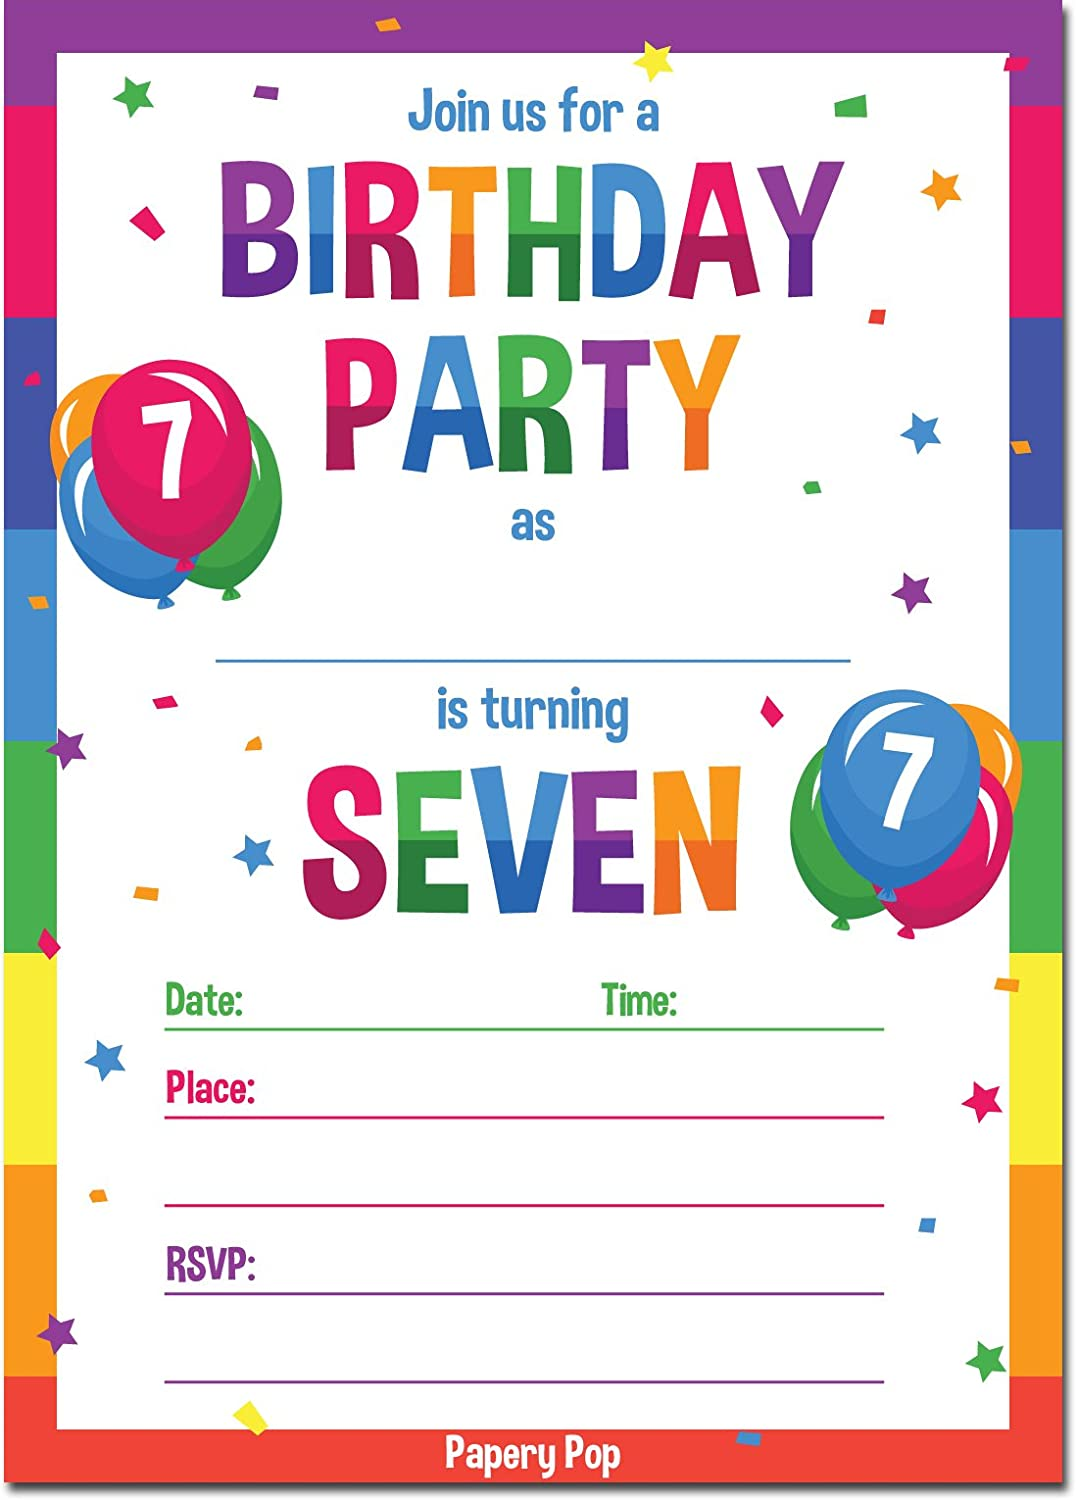 Papery Pop 7th Birthday Party Invitations with Envelopes (15 Count) - 7 Year Old Kids Birthday Invitations for Boys or Girls - Rainbow